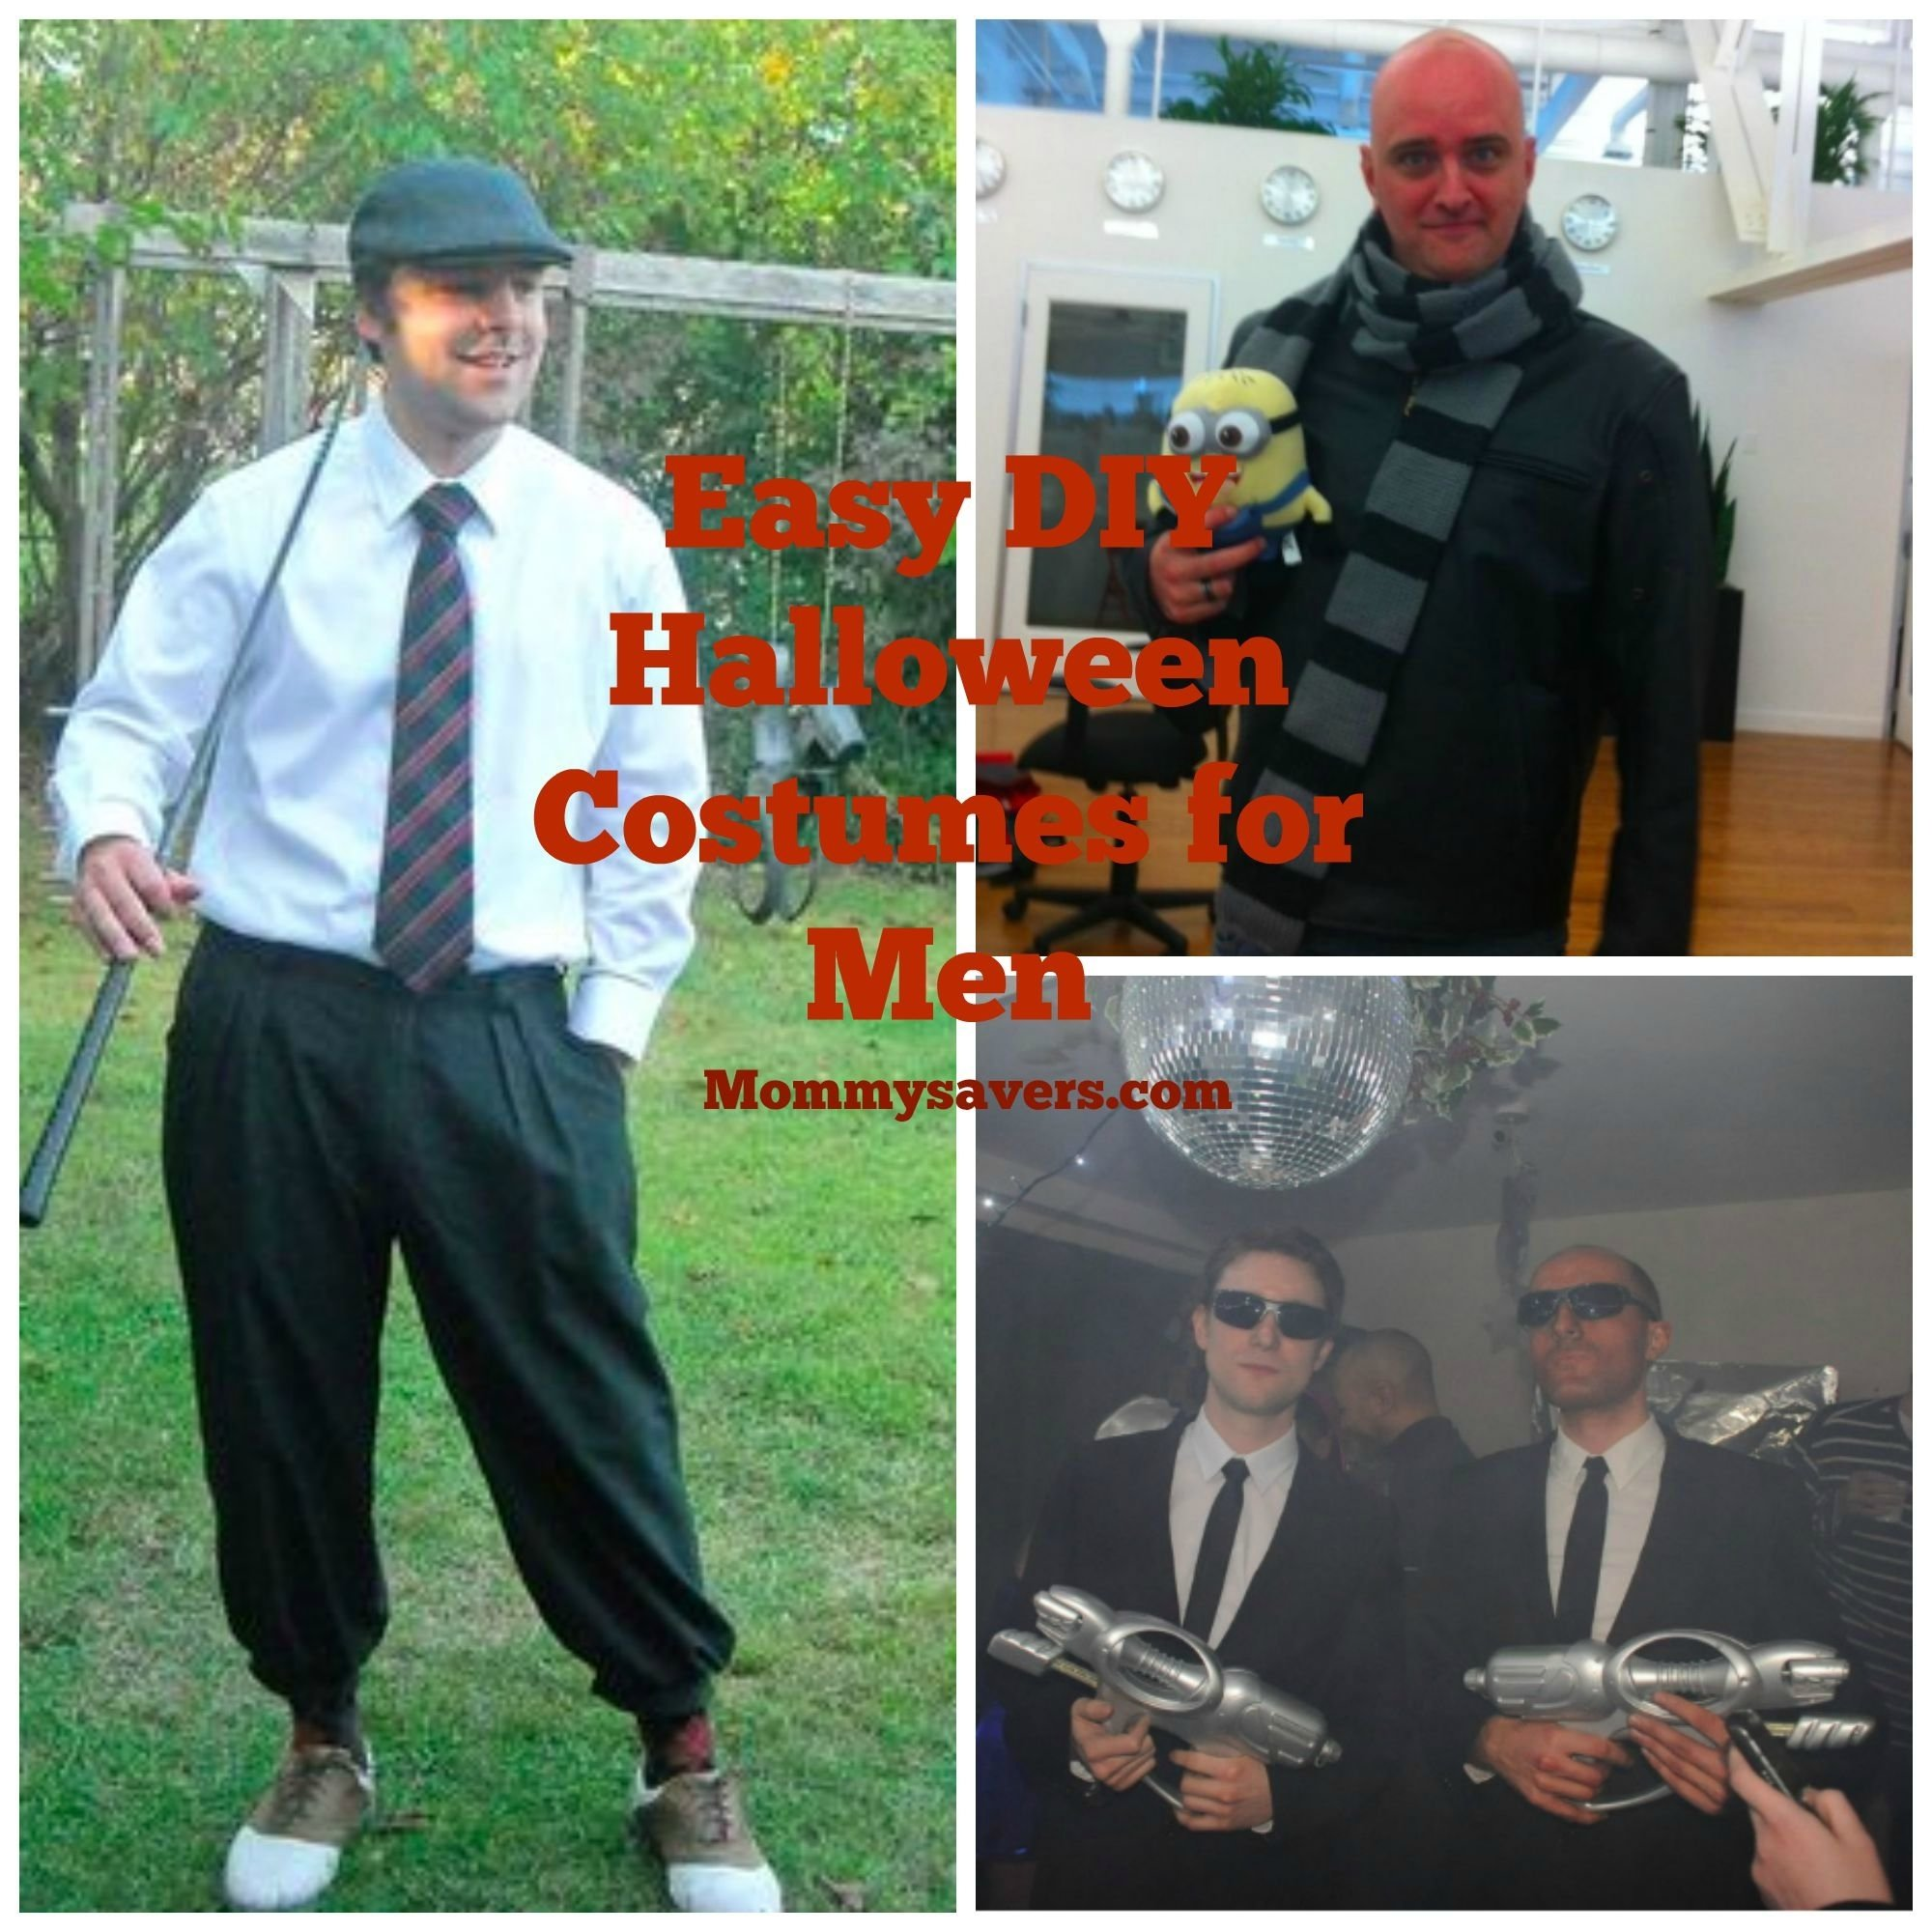 10 Most Recommended Awesome Costume Ideas For Men diy halloween costumes for men mommysavers 2021